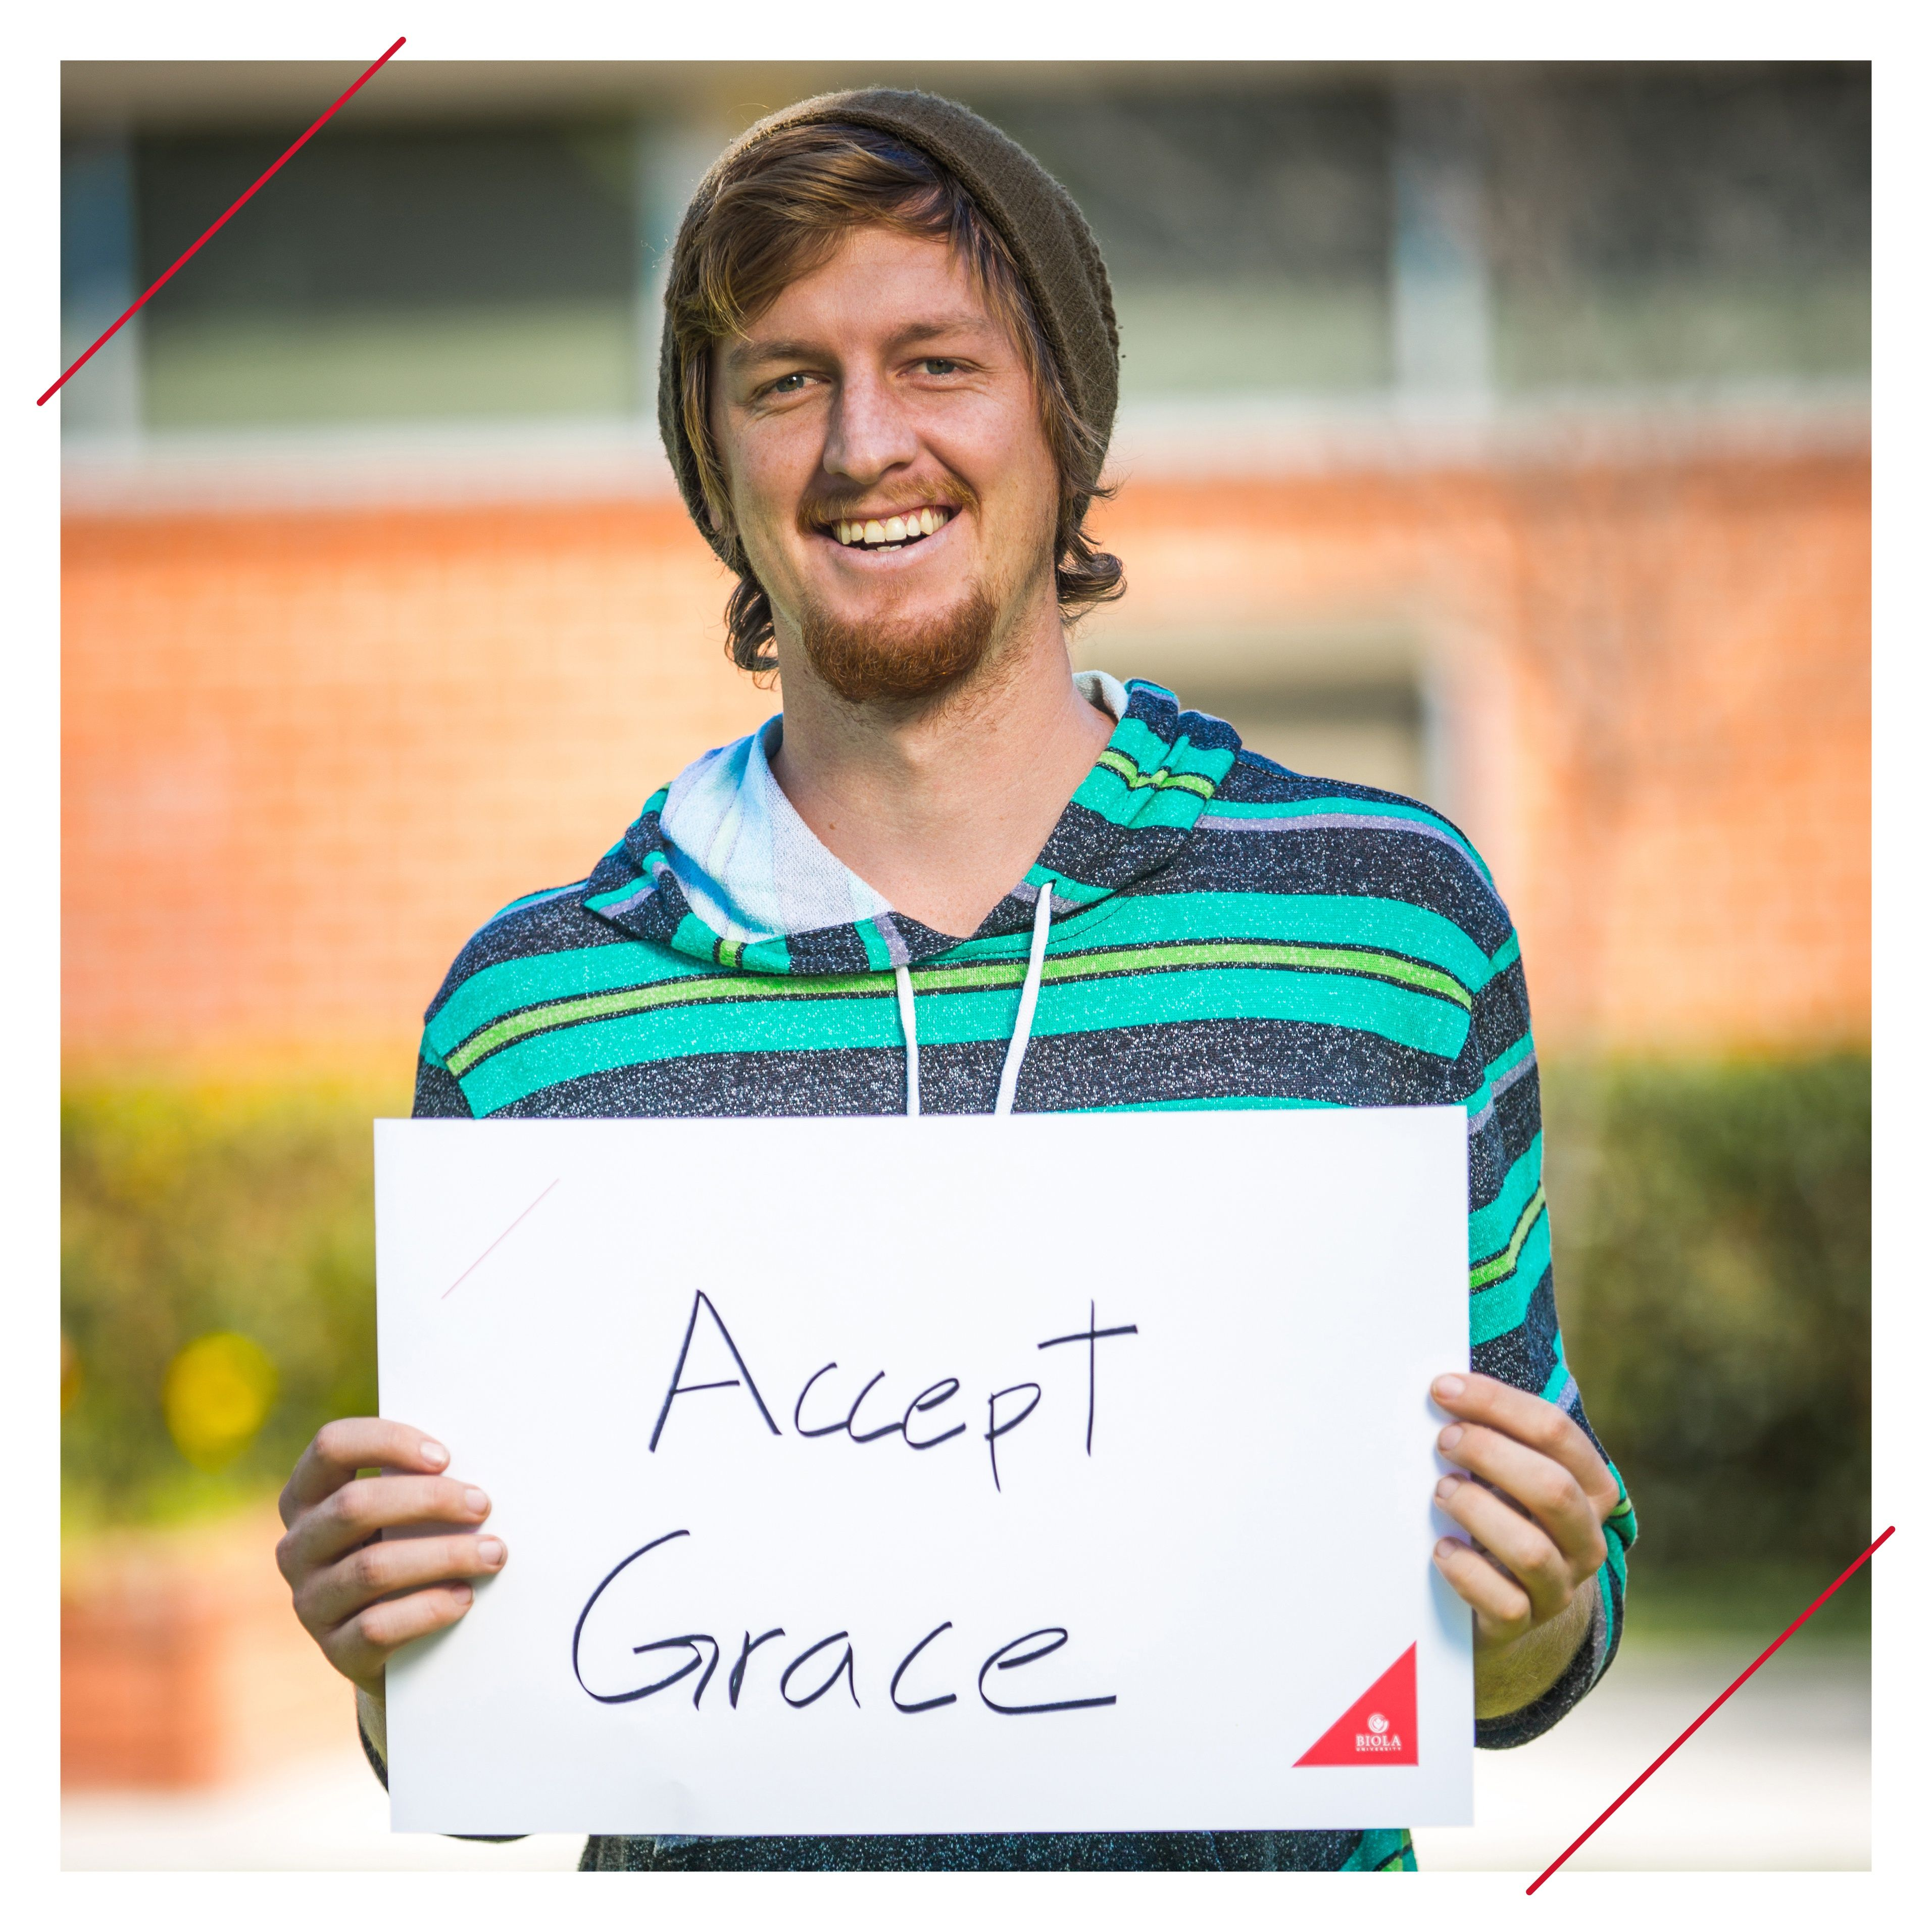 """Because of Biola, I #HaveTheCourage to accept grace."" – Johnathan Burkhardt, journalism & integrated media  #ConvictionAndCourage #JoinBiola http://bit.ly/1zNWihZ"